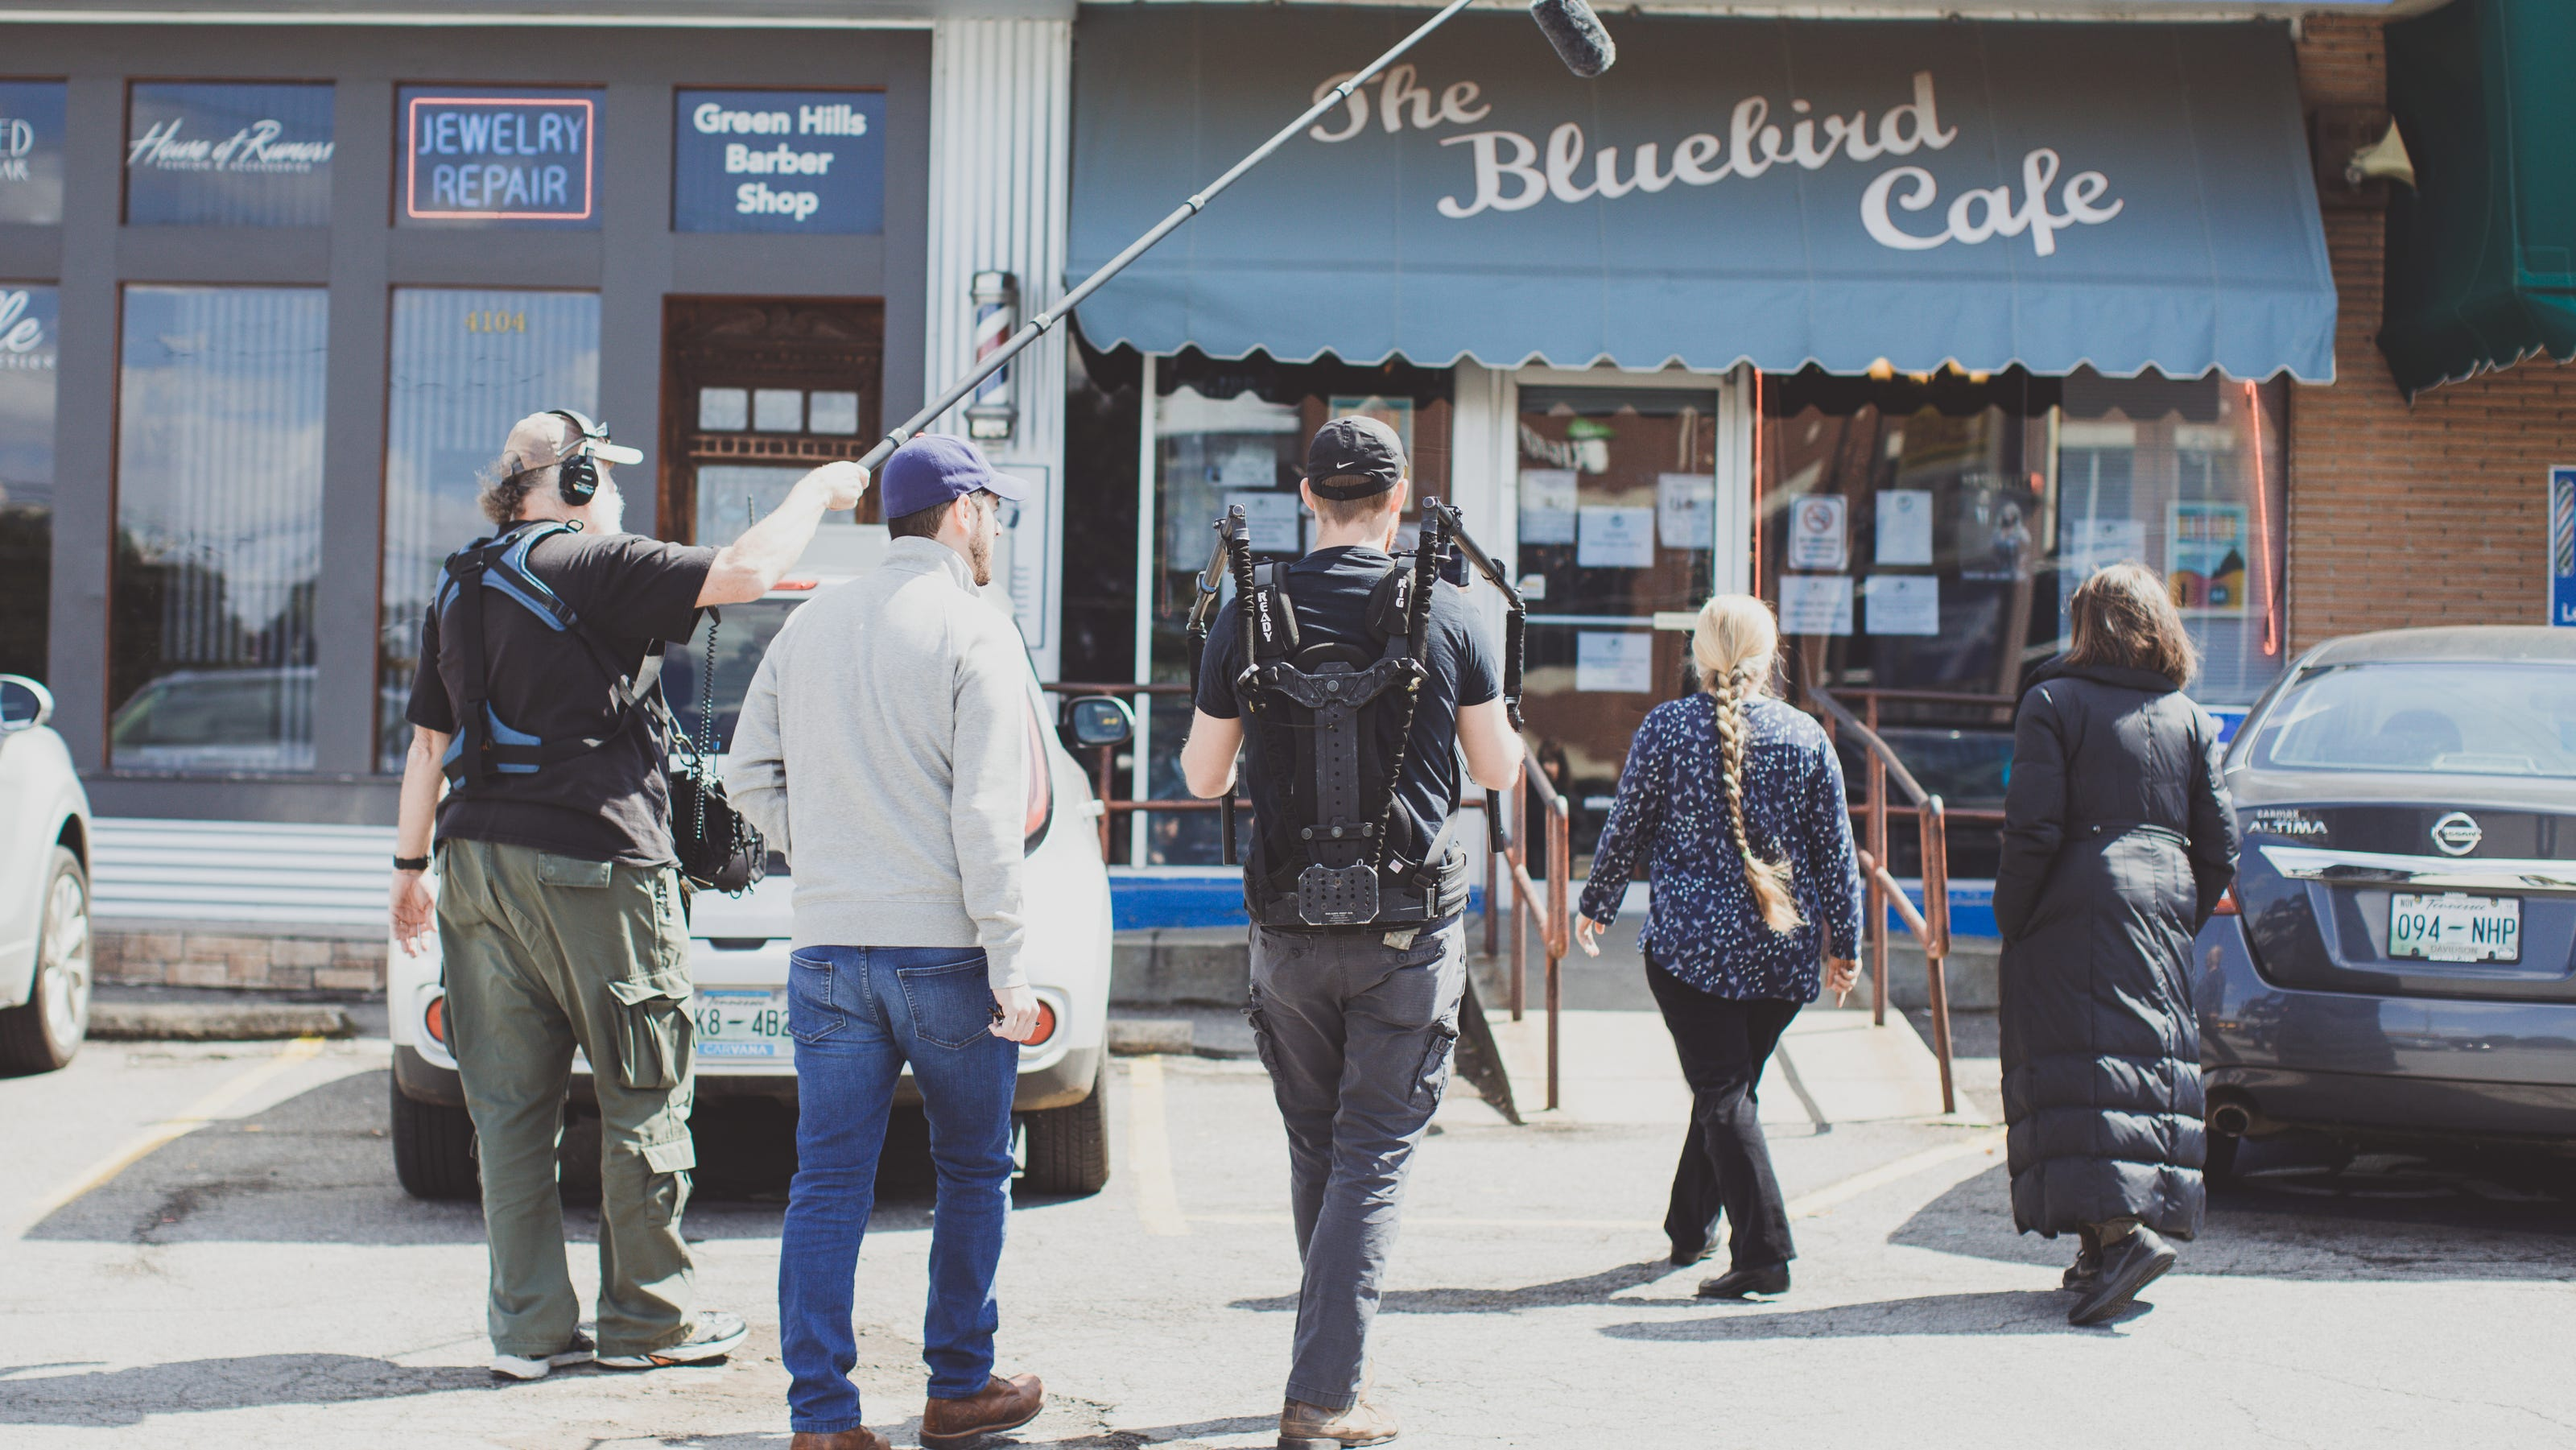 Bluebird Cafe movie: 5 things that might surprise you about the legendary venue